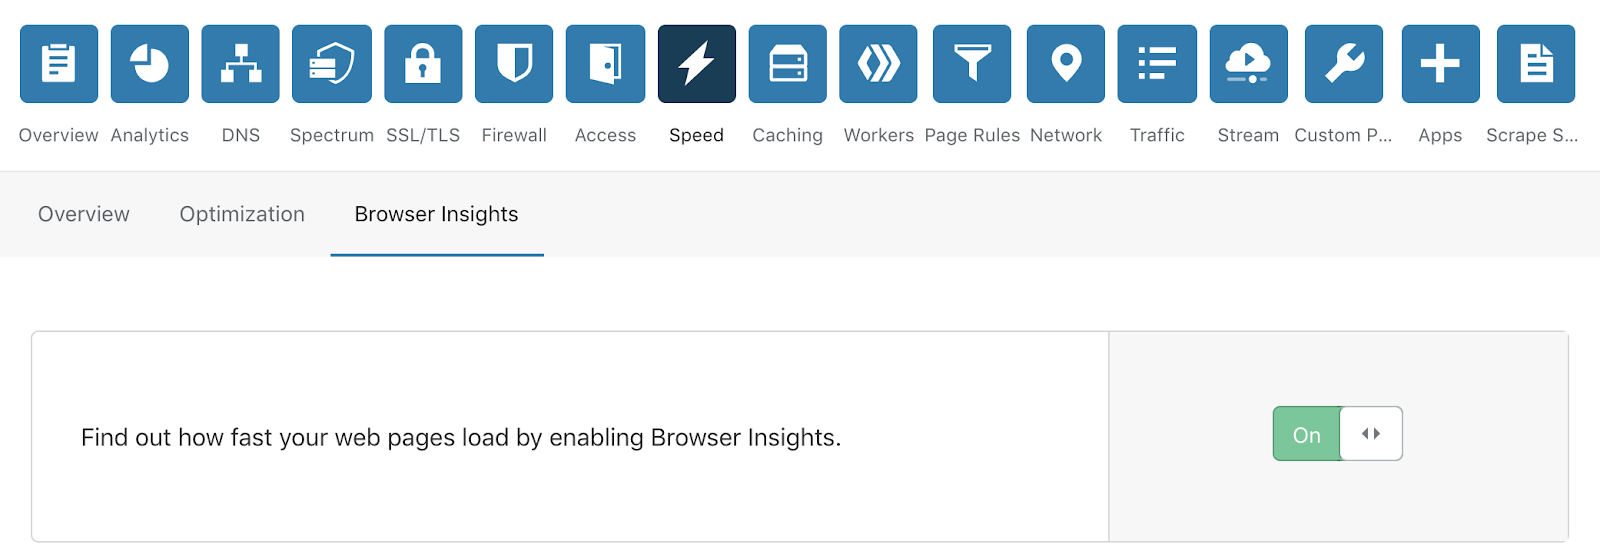 Introducing Browser Insights